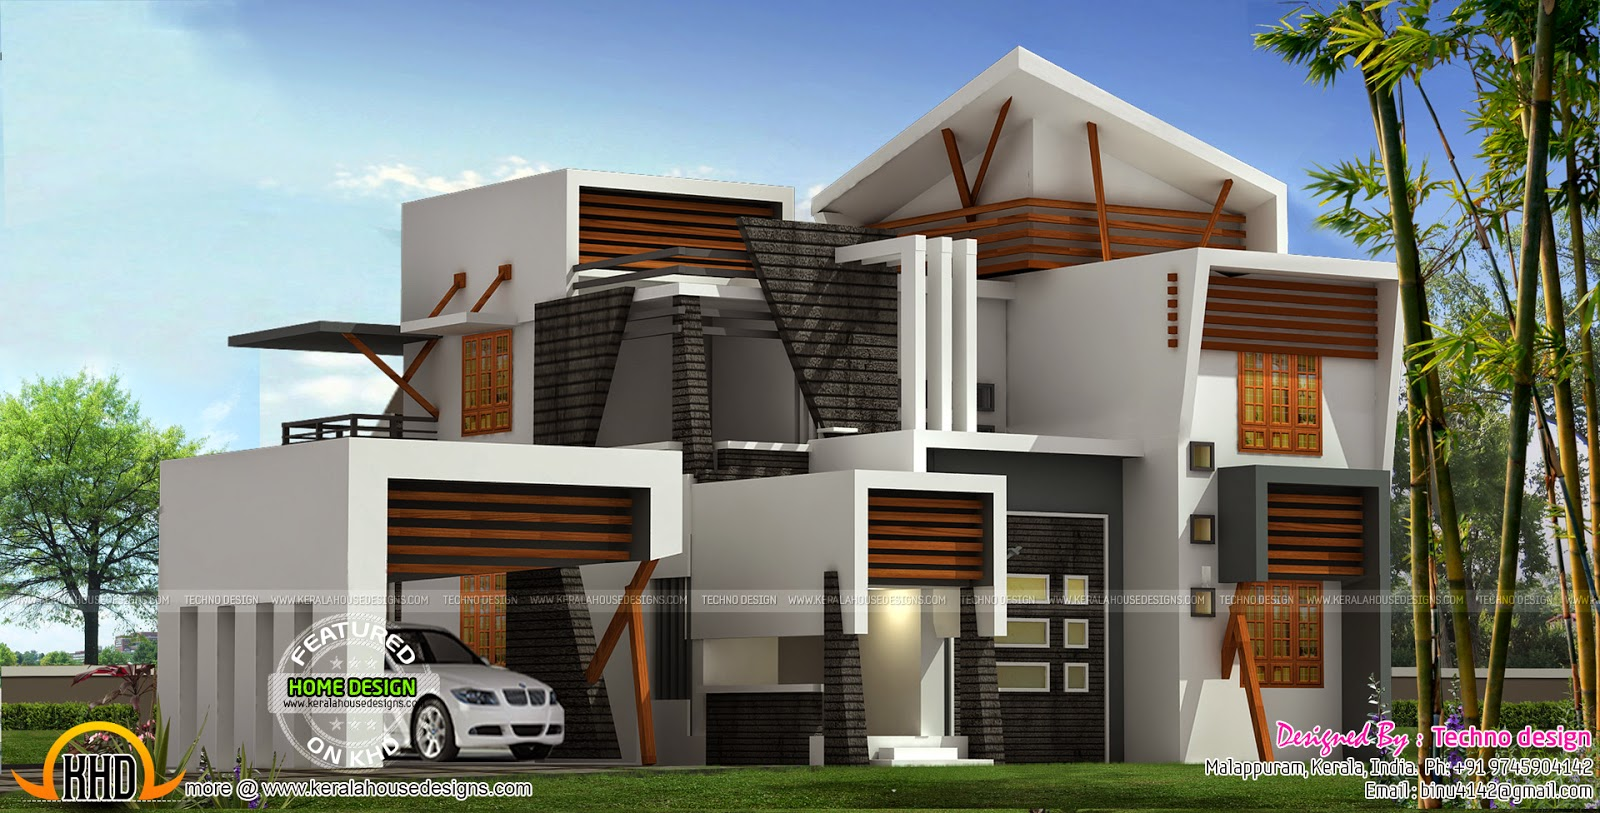 Modern 214 square meter house plan kerala home design and floor plans - Houses atticsquare meters ...